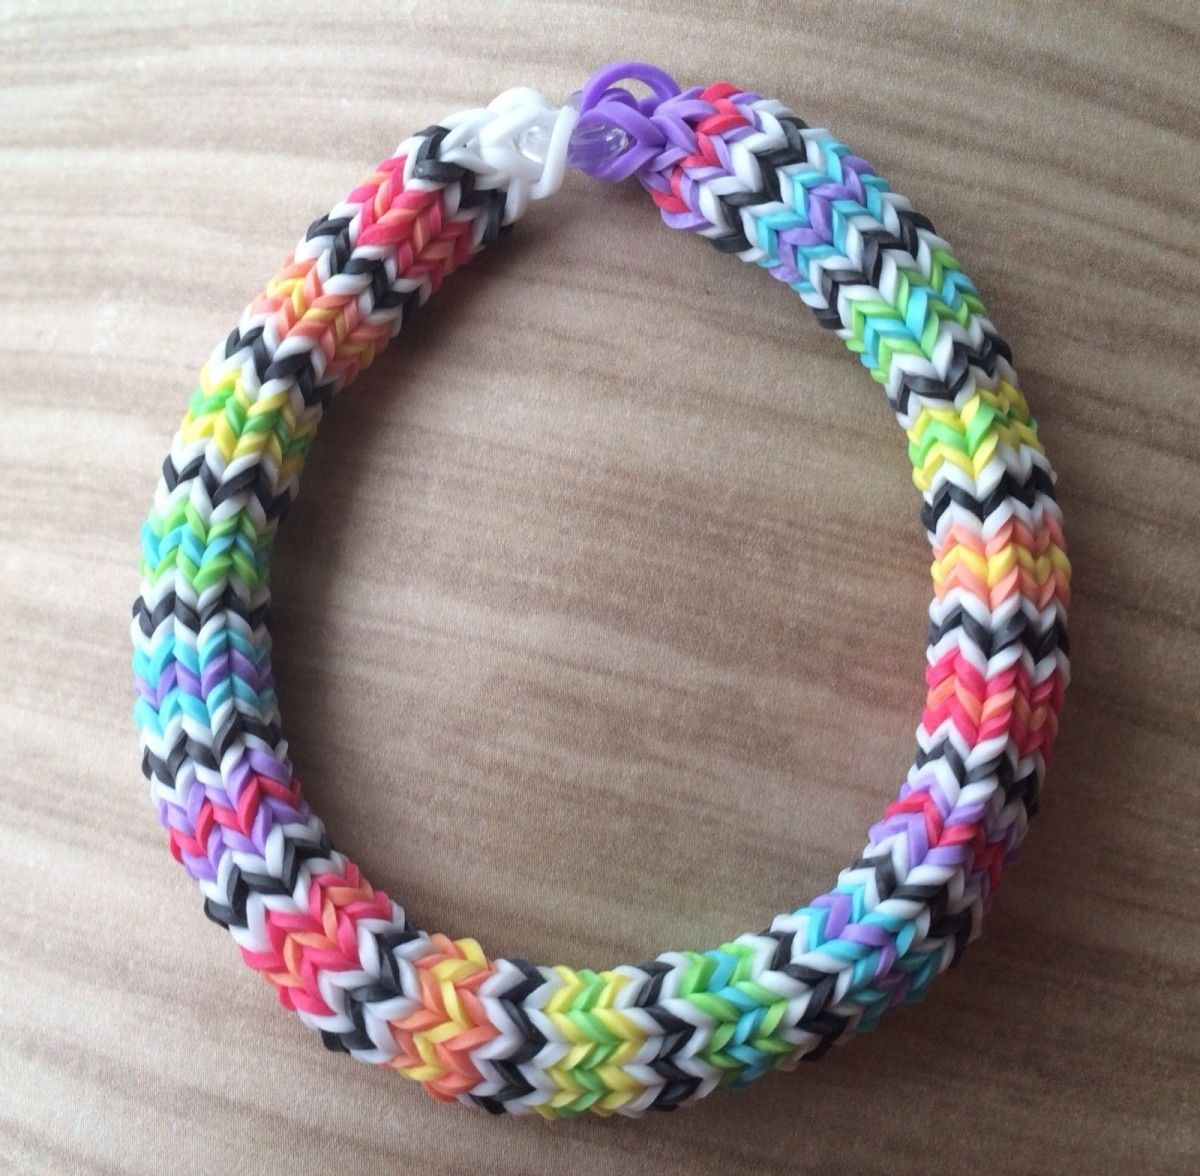 Rainbow+loom+pictures  Rainbow Loom Bracelet Kit Target Rainbow Loom  Bracelets Triple